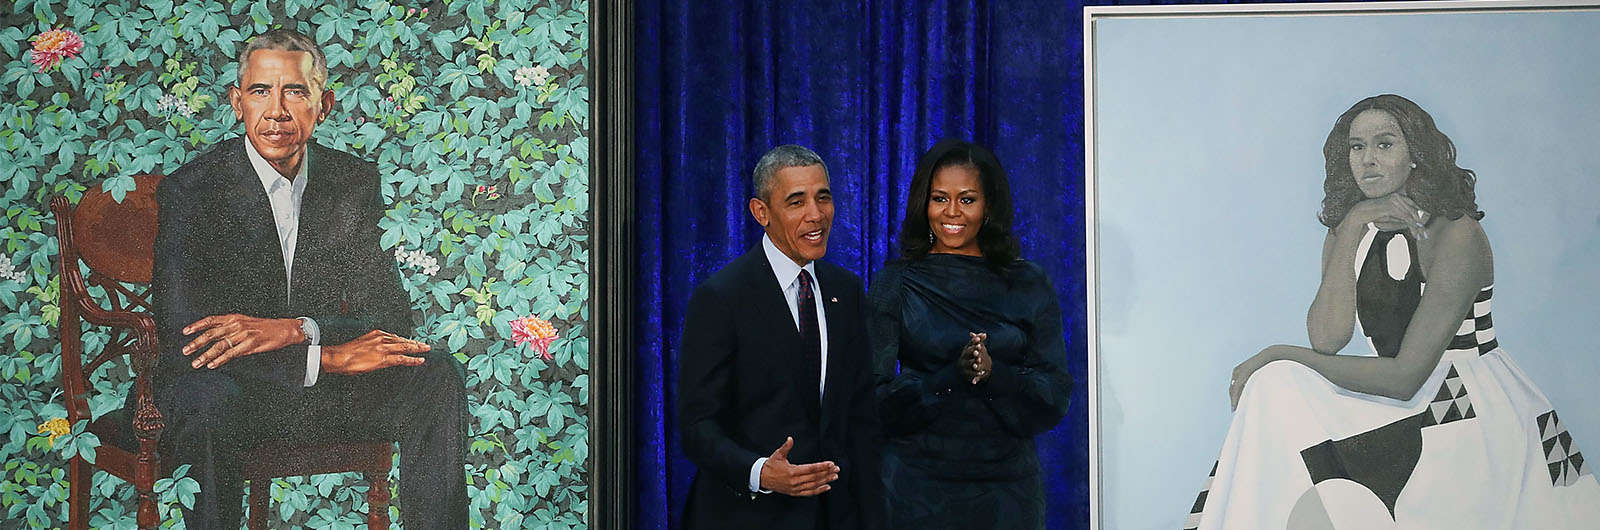 The Obamas' Presidential Portraits Are Breathtaking